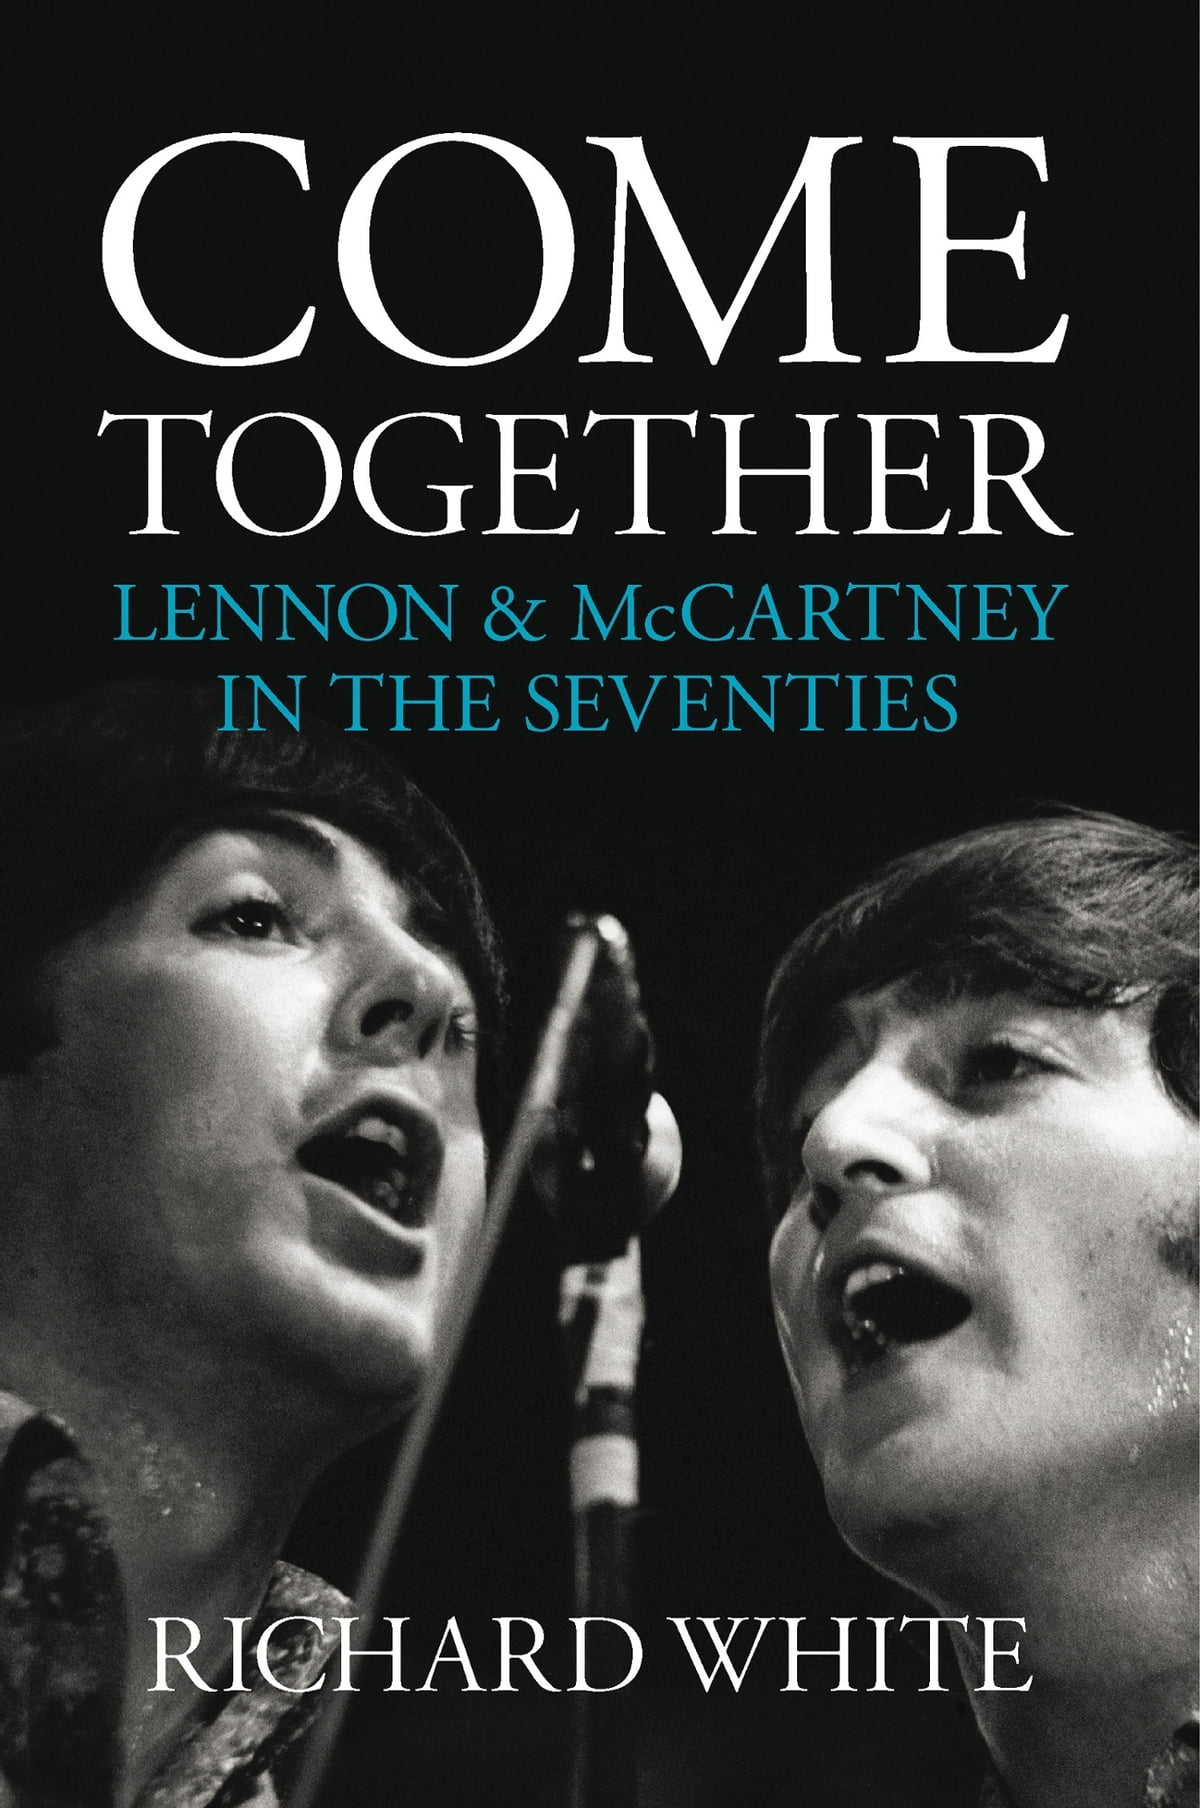 Come together lennon and mccartney in the seventies ebook by come together lennon and mccartney in the seventies ebook by richard white 9781783238590 rakuten kobo fandeluxe Epub